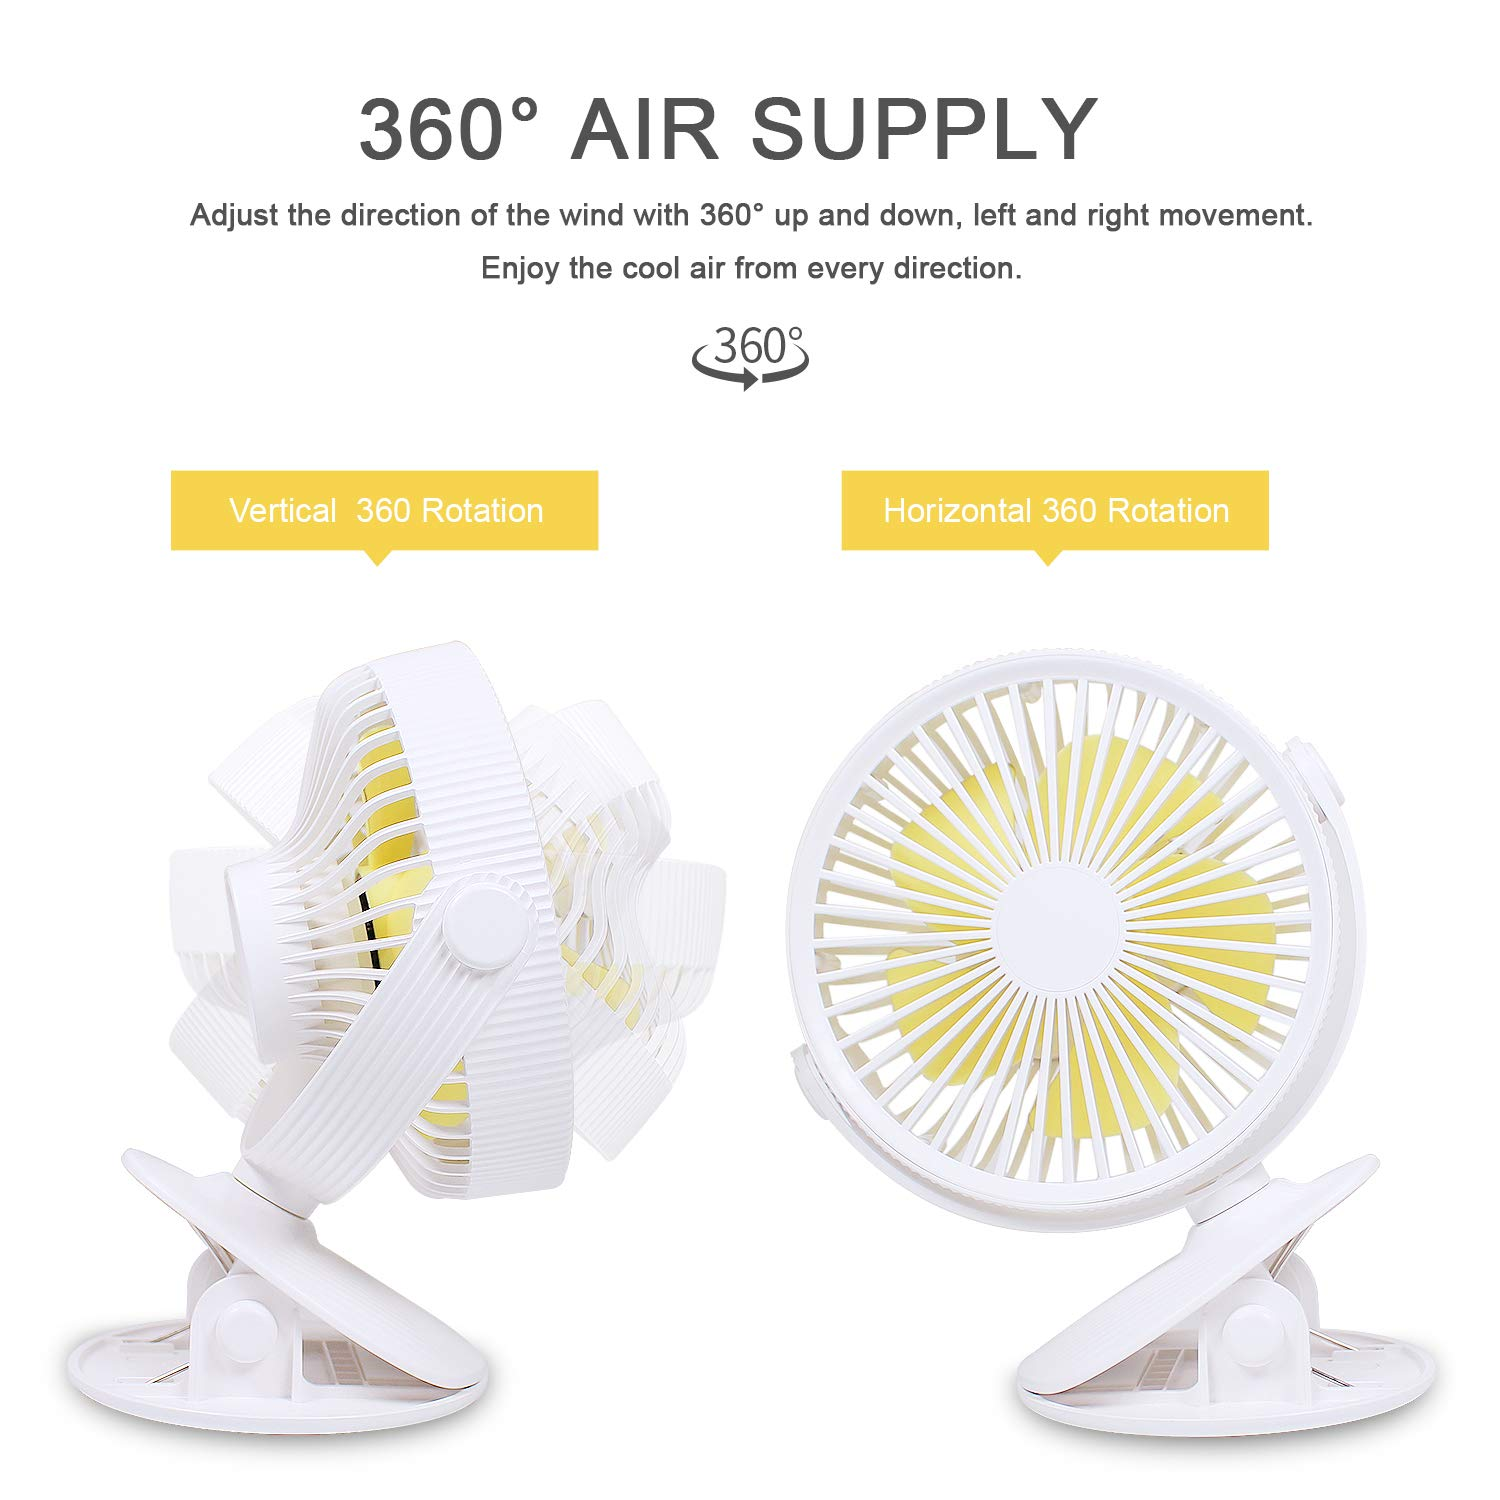 COSSCCI Small Desk Fan with Clip, Mini USB Personal Oscillating Fan Portable Electronic Battery Operated Cooling Fan for Stroller Outdoor Home Office Bedroom(White)